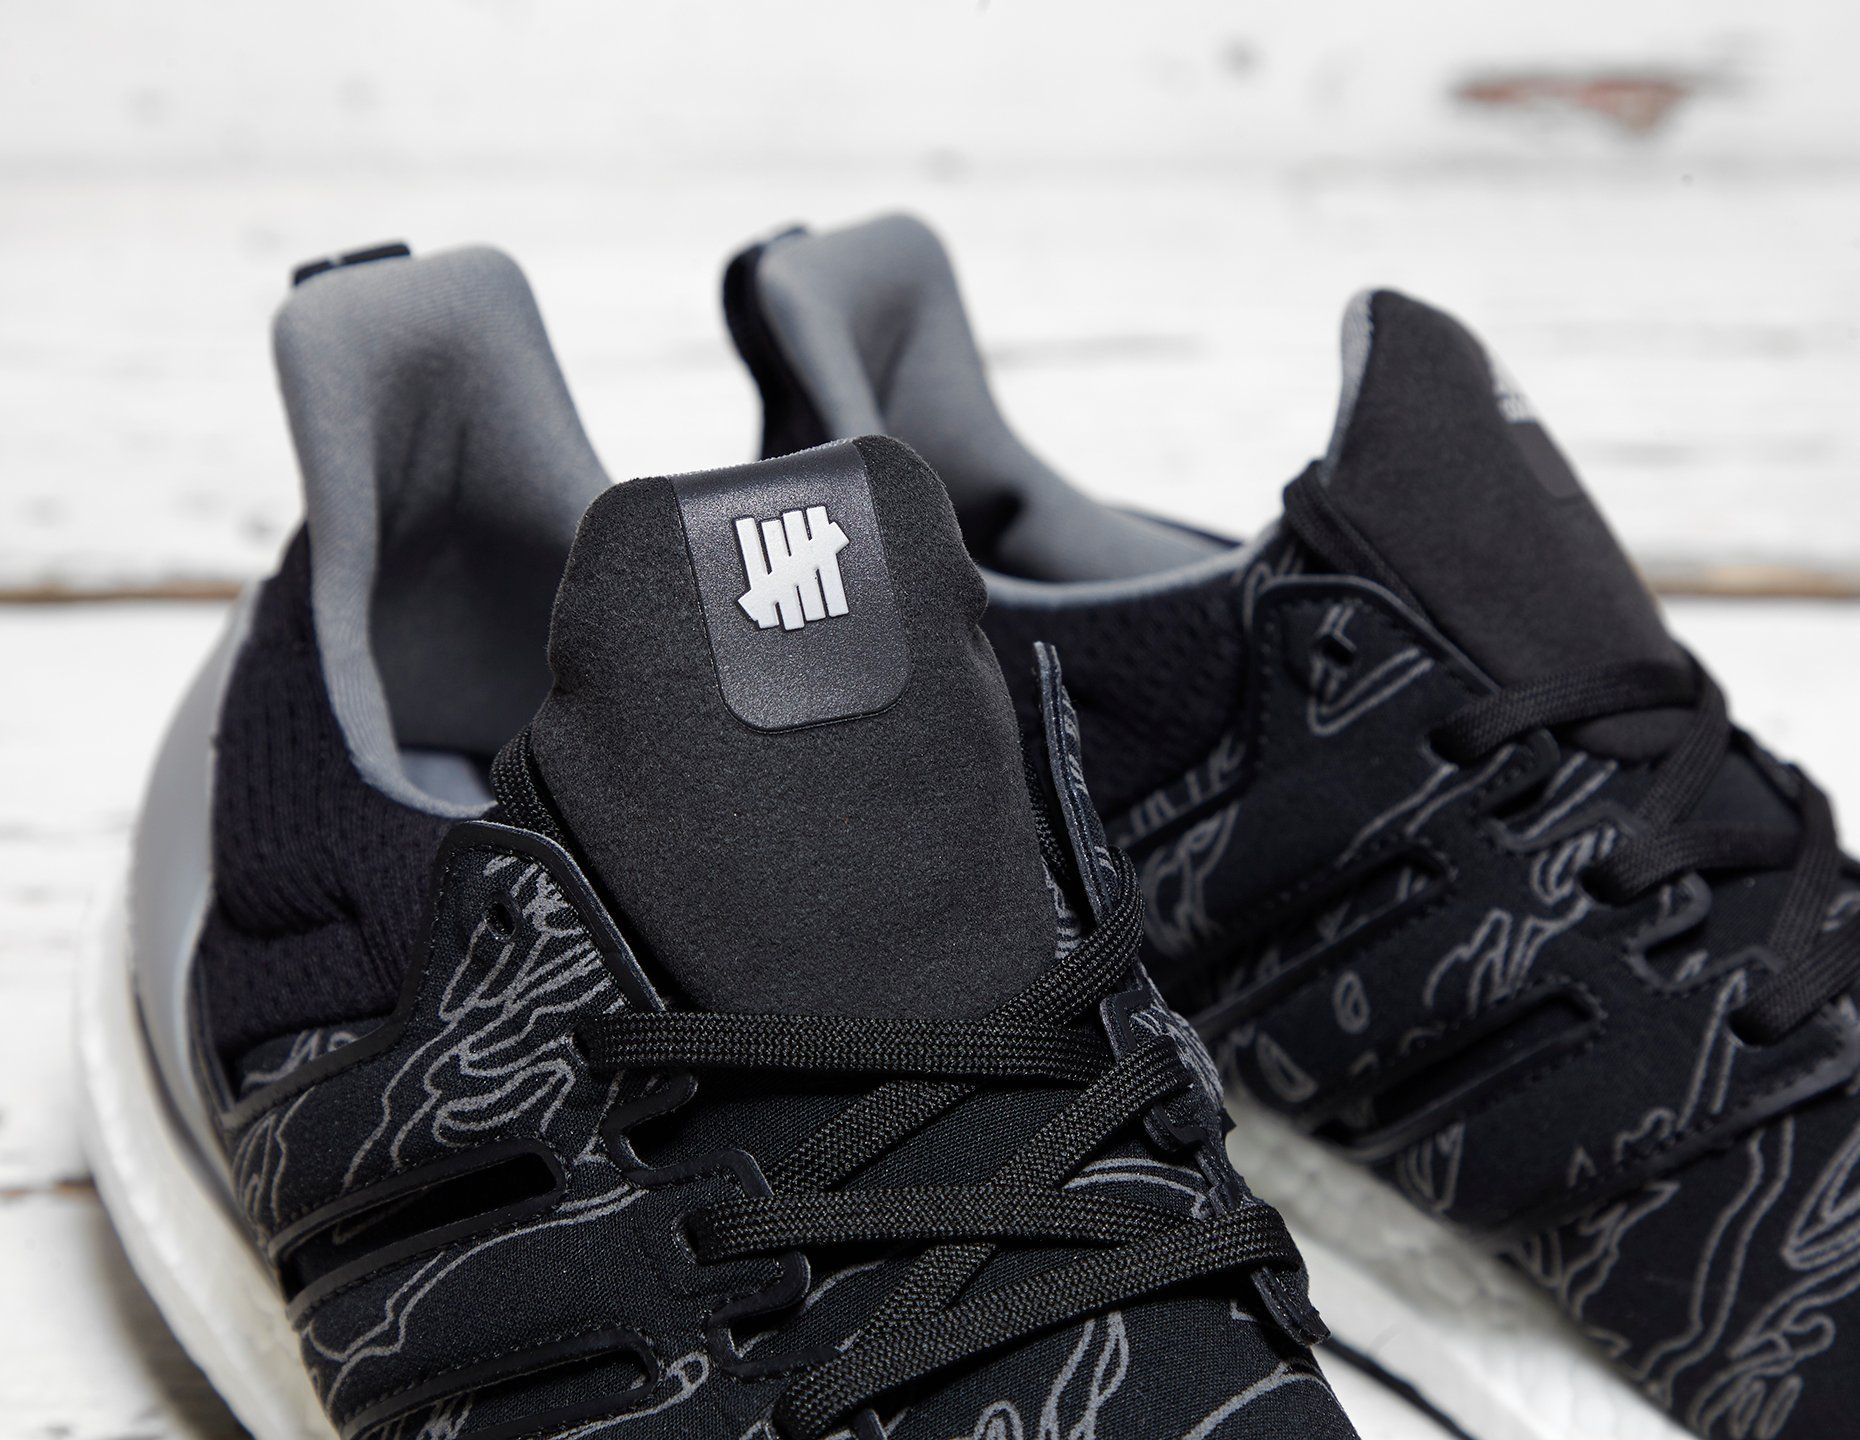 adidas x UNDEFEATED Ultra Boost